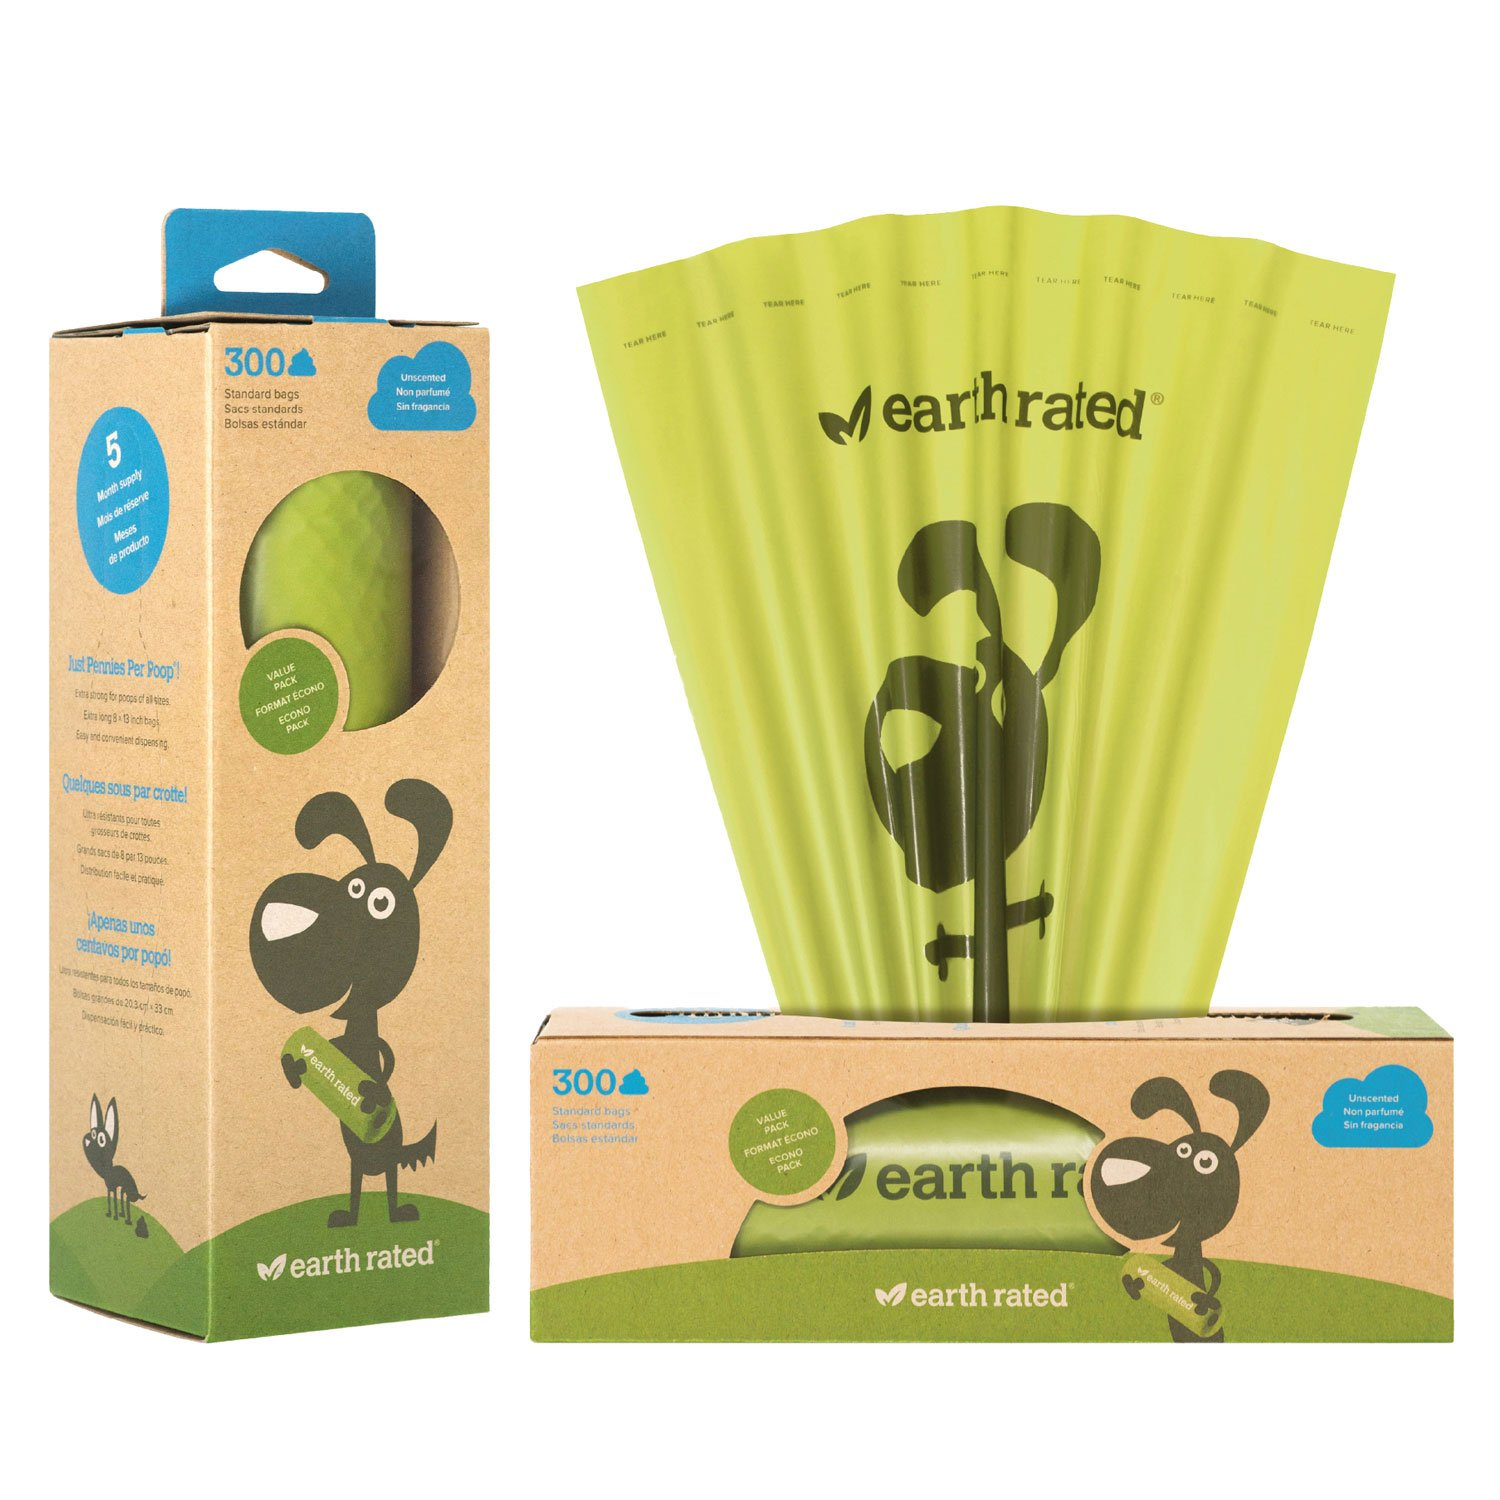 Earth Rated Dog Waste Bags, Poop Bags on a Single Roll for Pantries (not